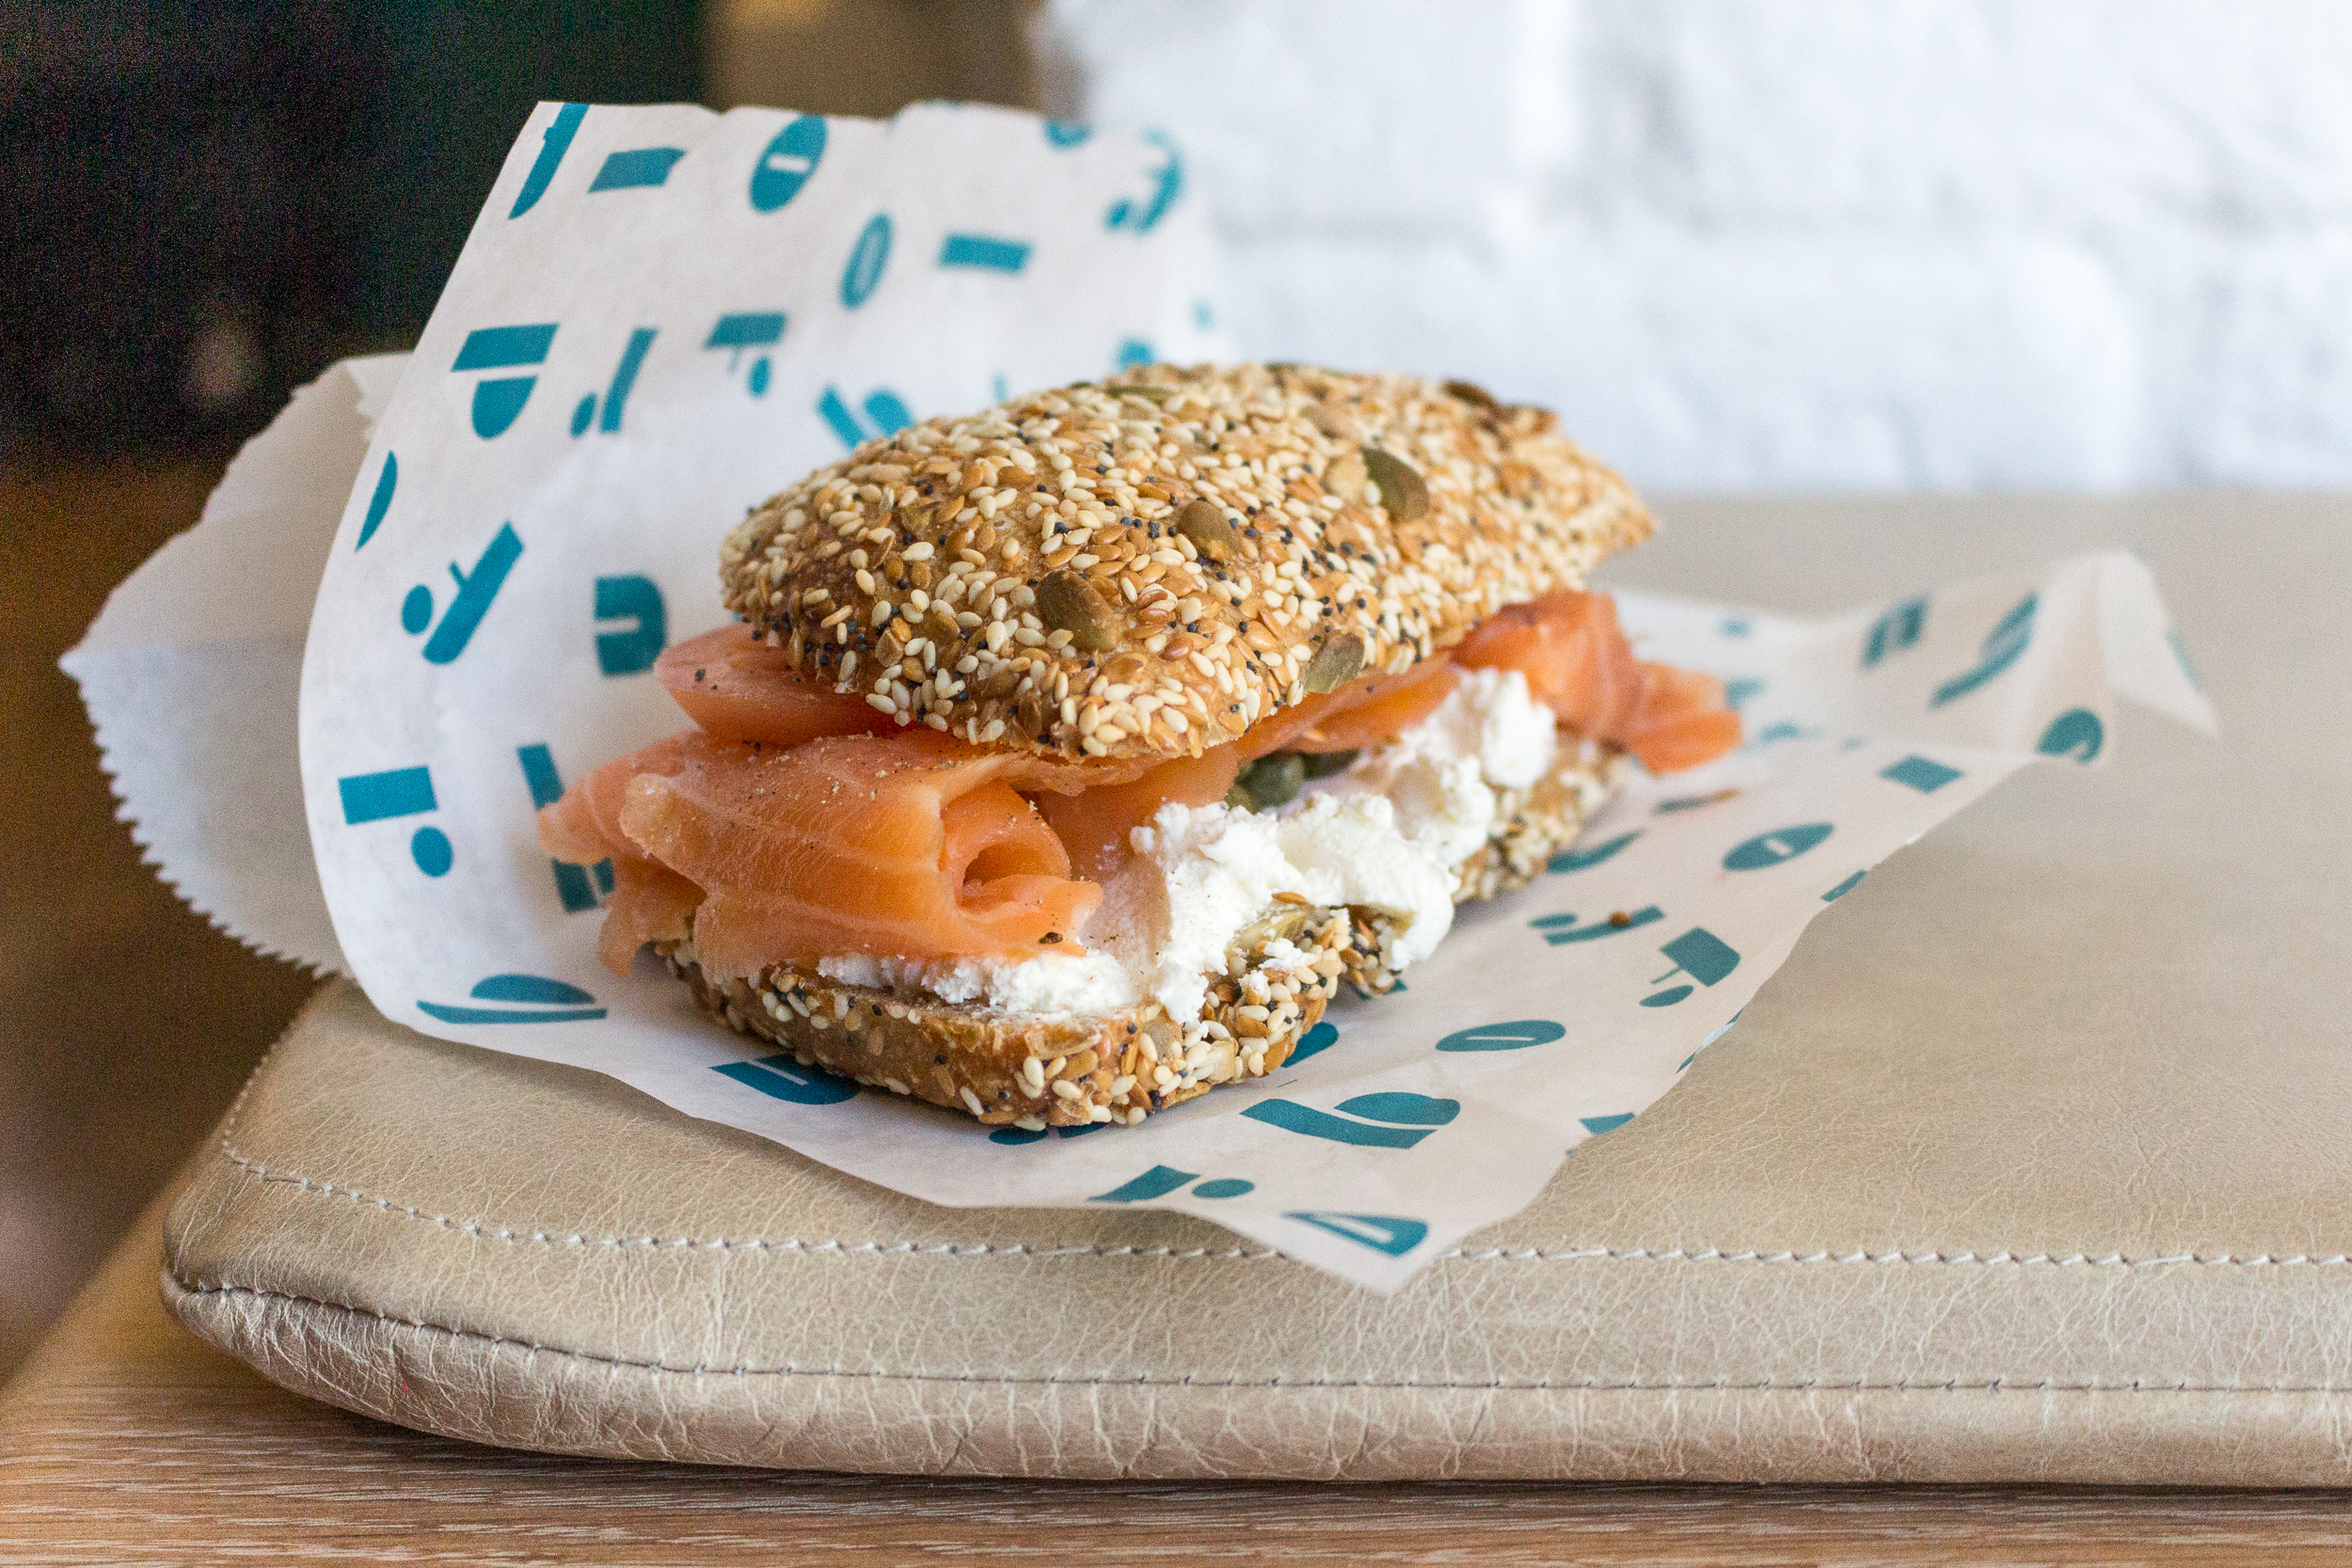 Brodflour Smoked Salmon Sandwich